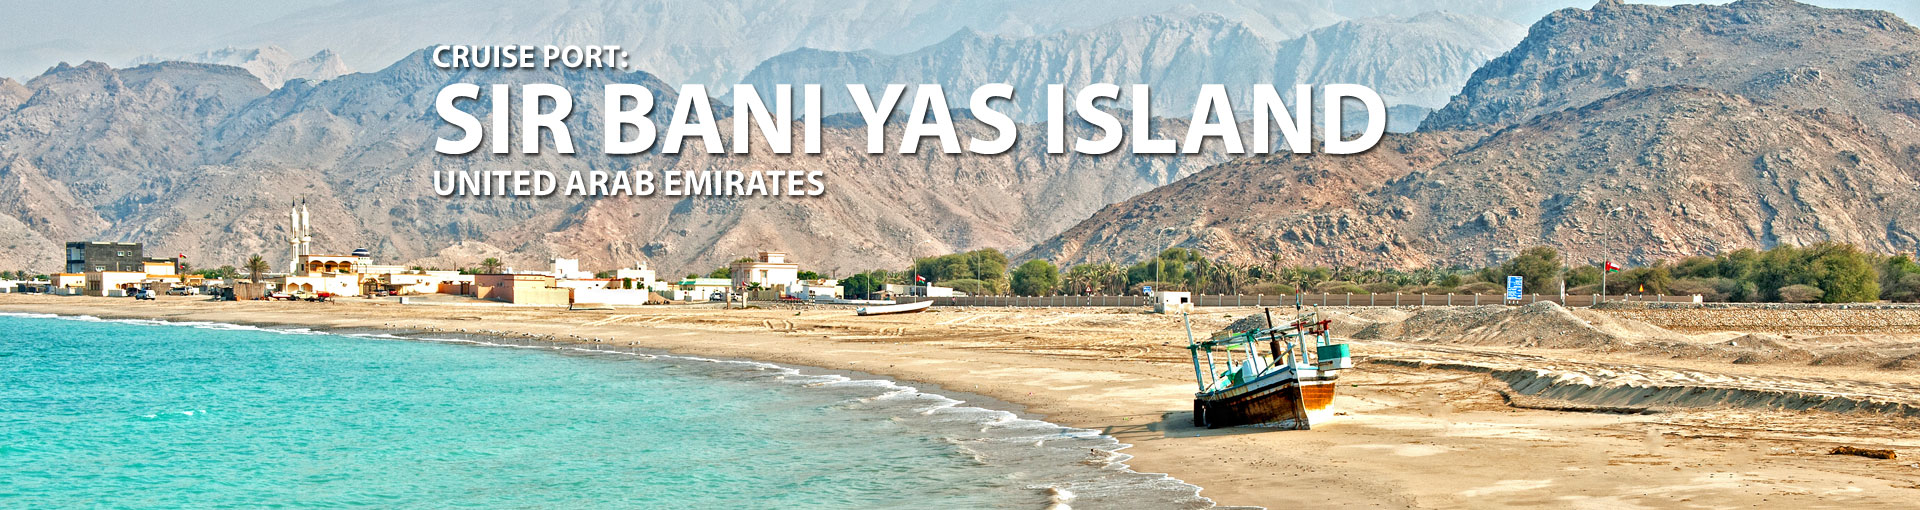 Cruises to Sir Bani Yas Island, UAE